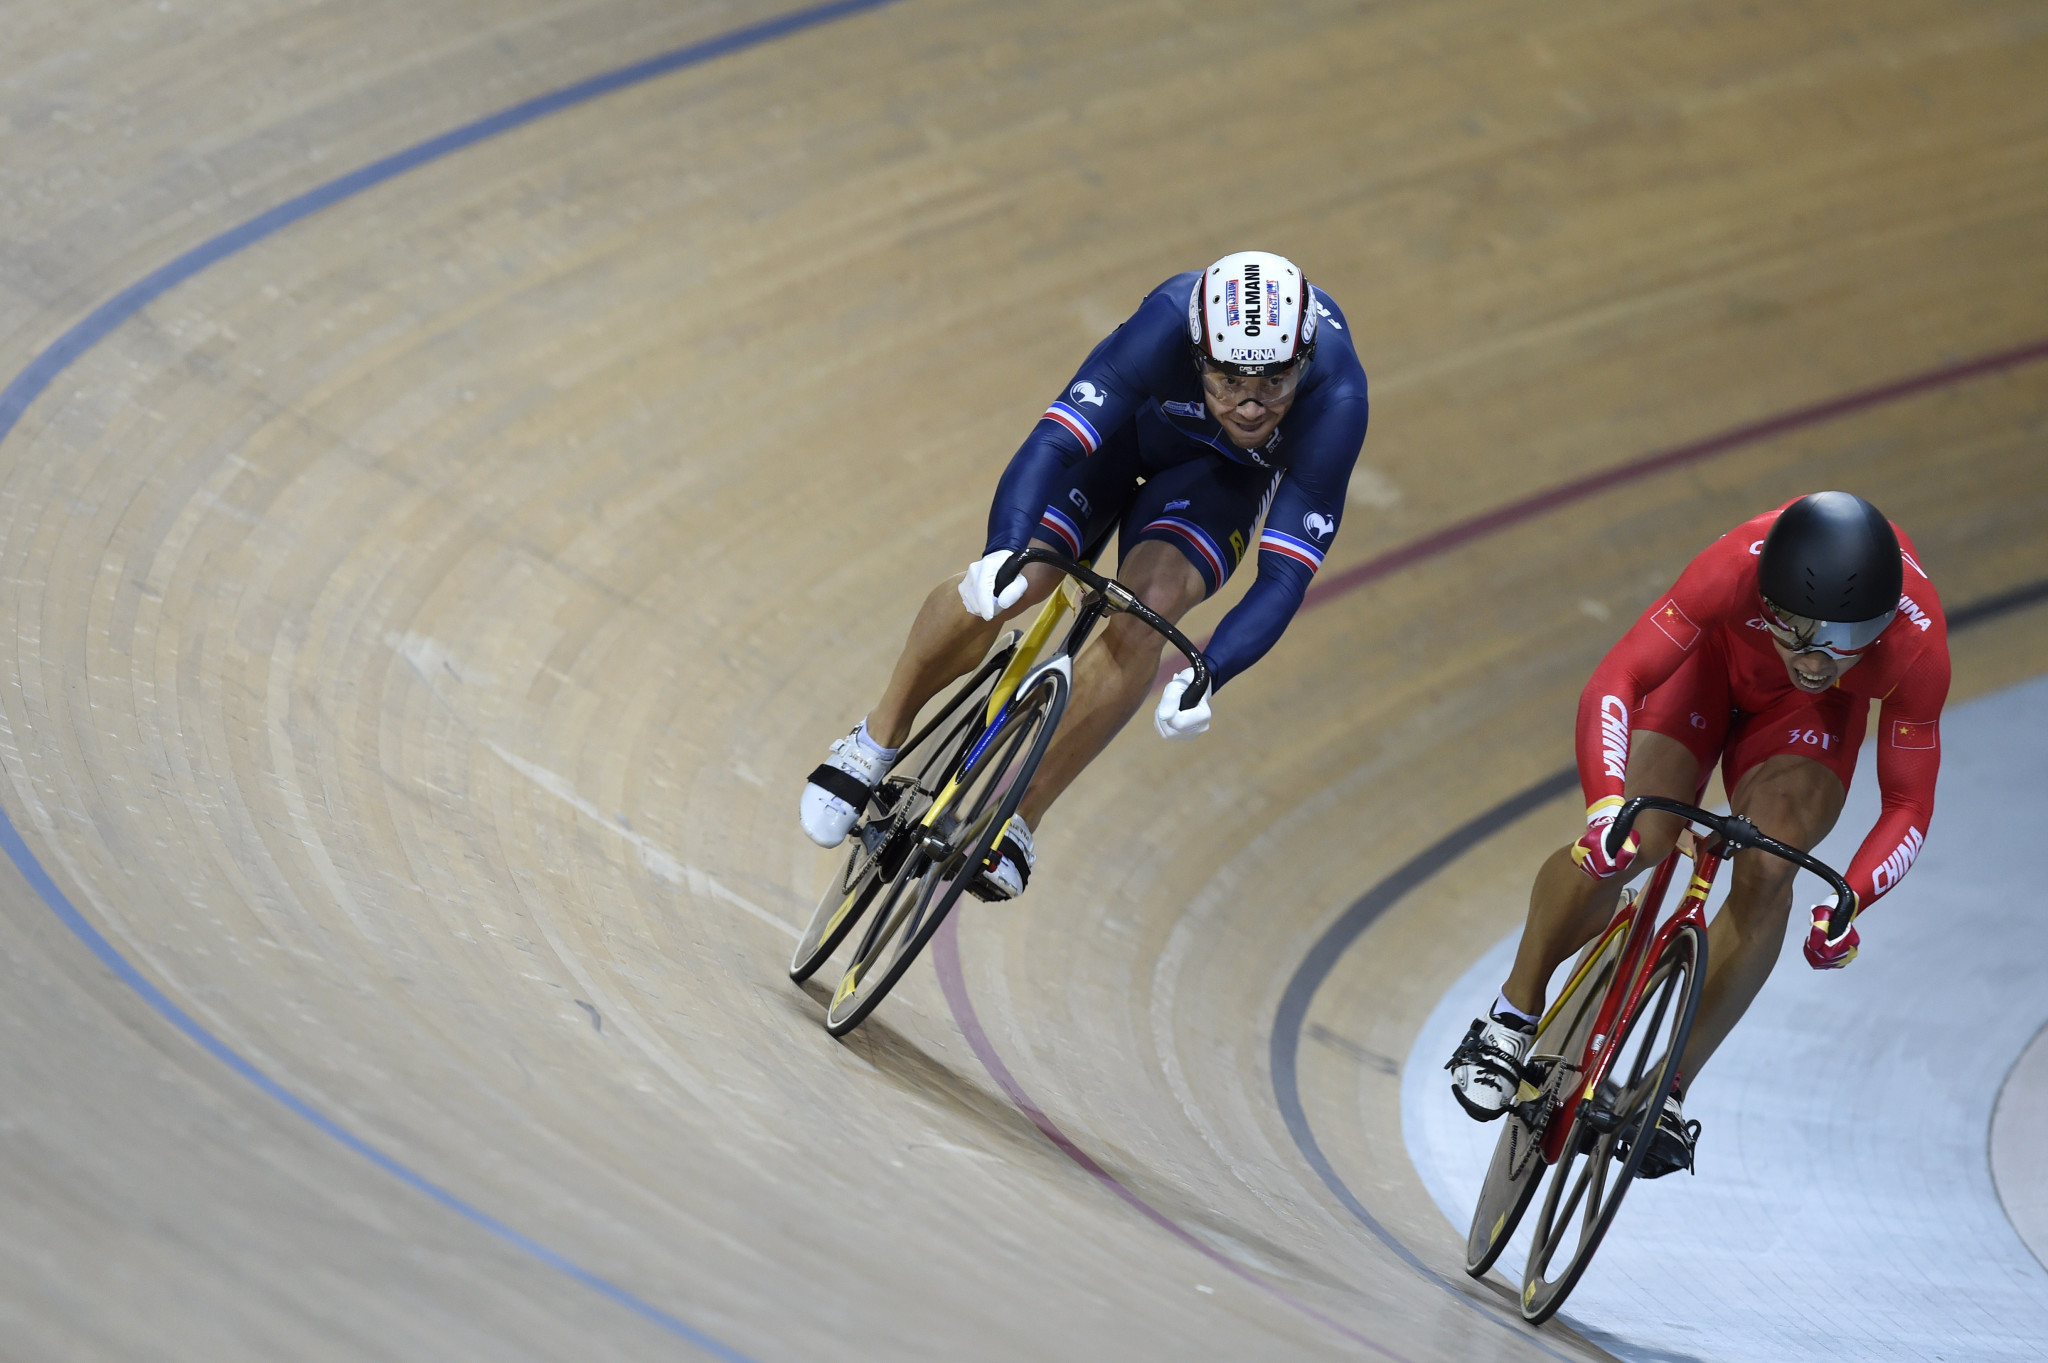 Simon takes gold at UCI 2021 Junior Track Cycling World Championships